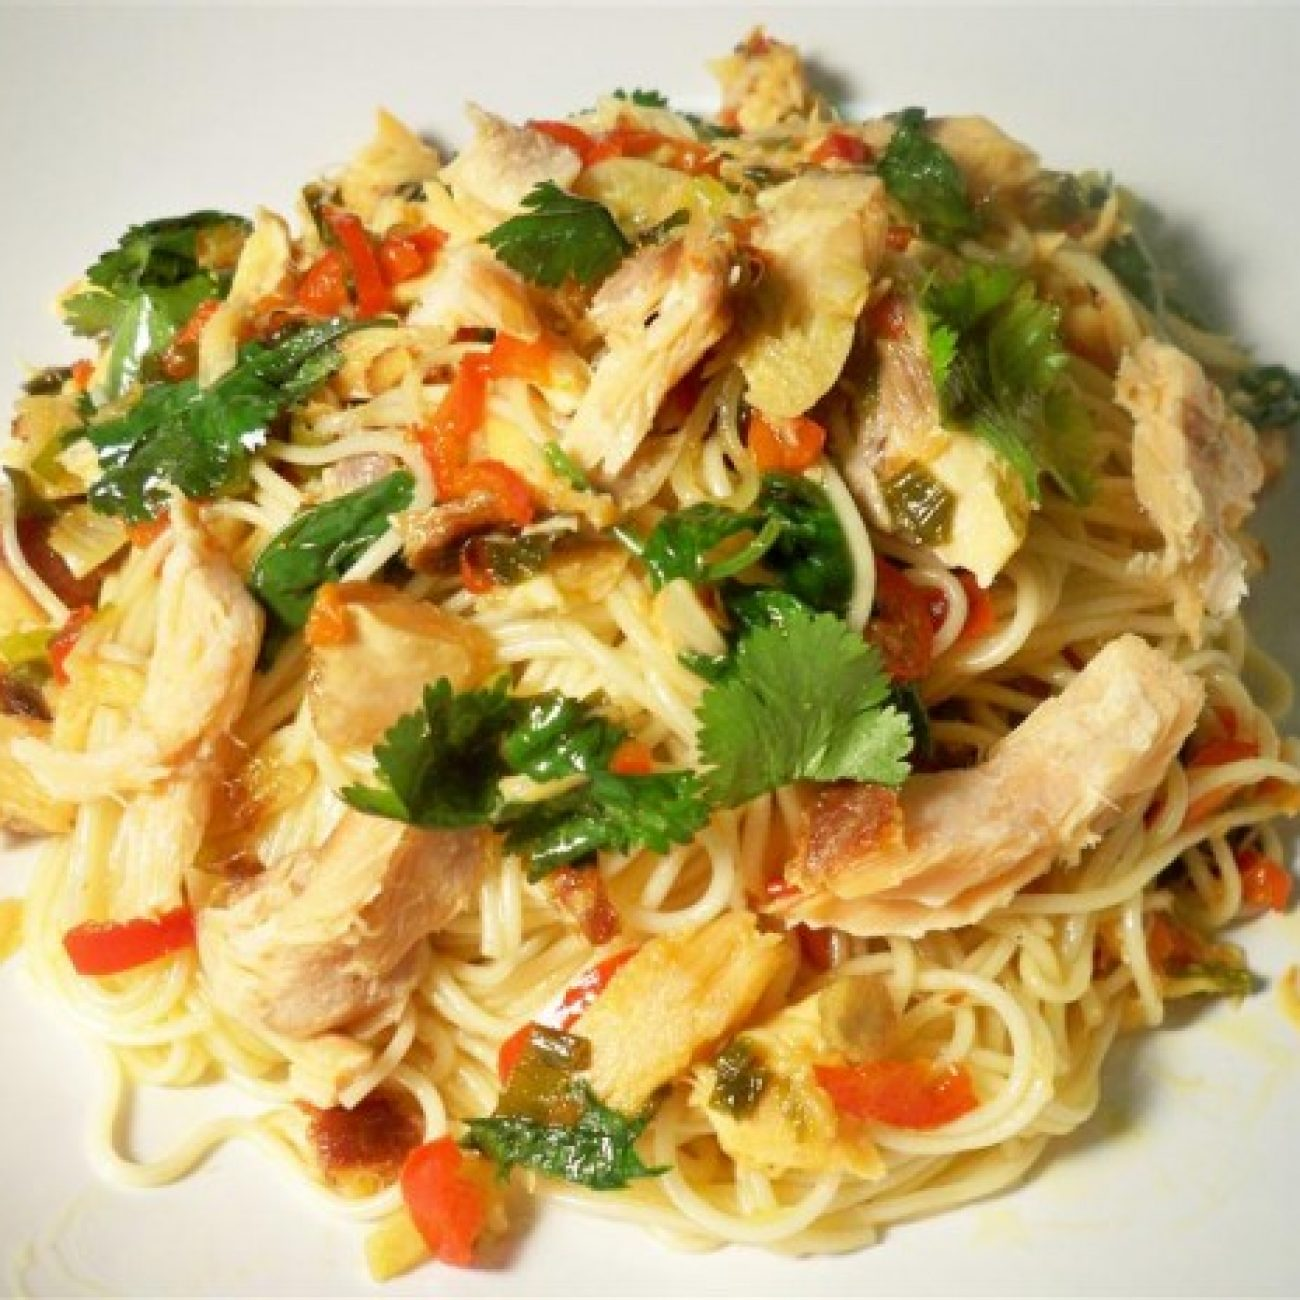 Smoked salmon pasta with chili and lime